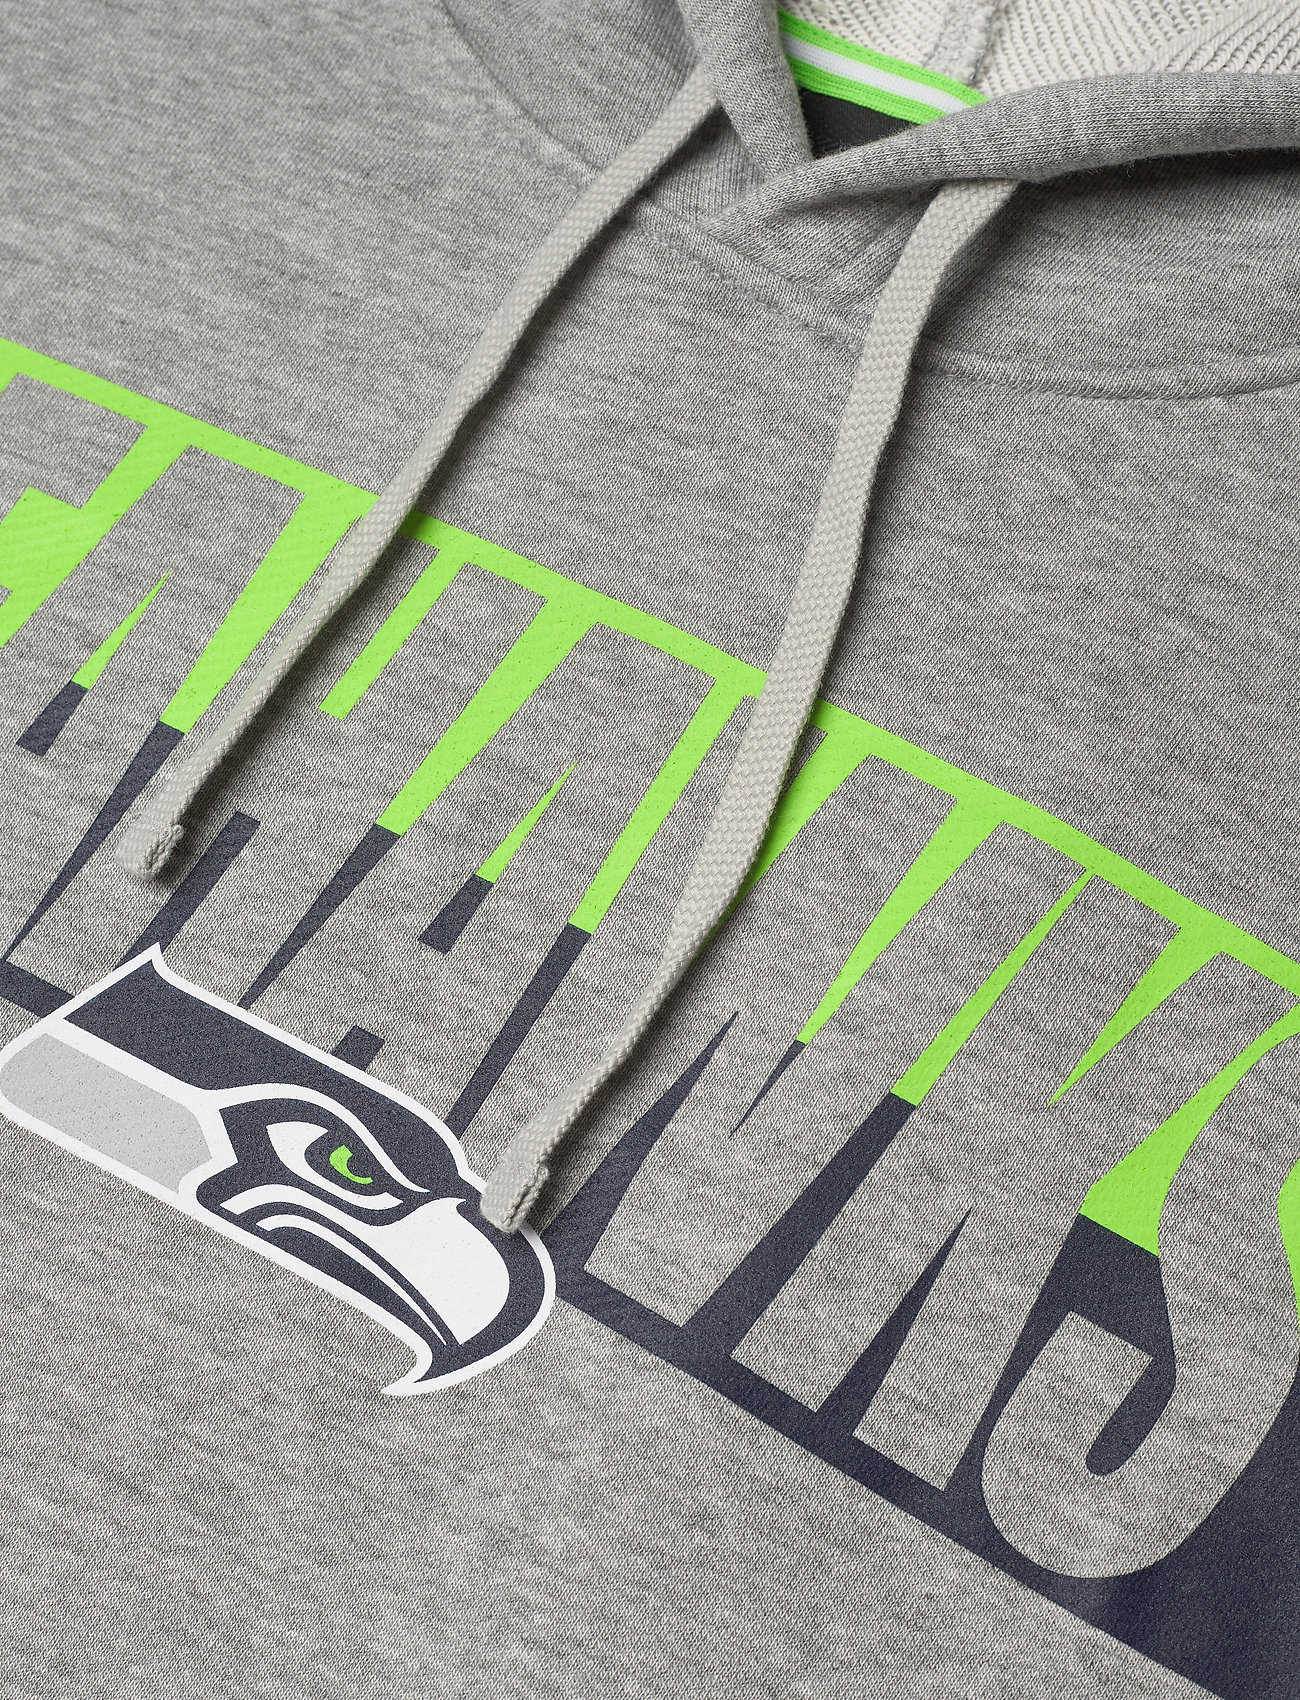 NIKE Fan Gear Seattle Seahawks Nike Wordmark Long Sleeve Heritage Hoodie - Sweatshirts DARK GREY HEATHER / ACTION GREEN / COLLEGE NAVY - Menn Klær